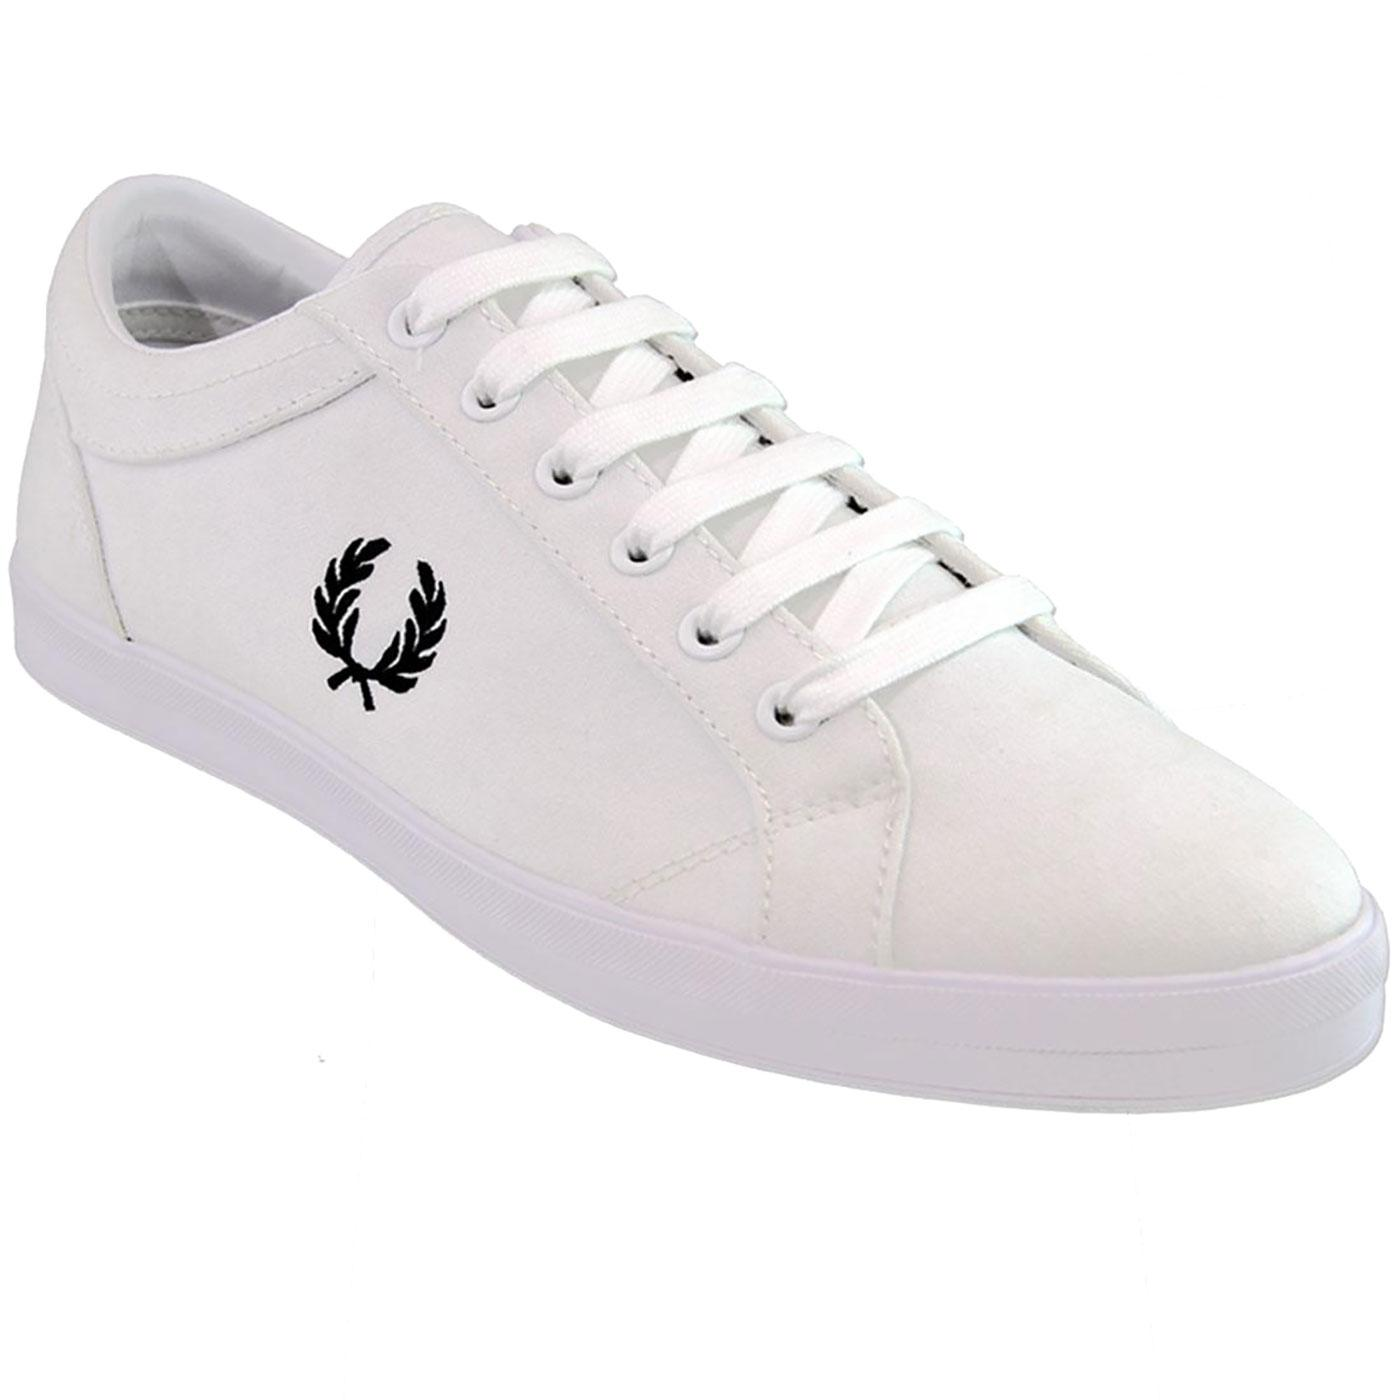 Baseline FRED PERRY Retro Casual Canvas Trainers W